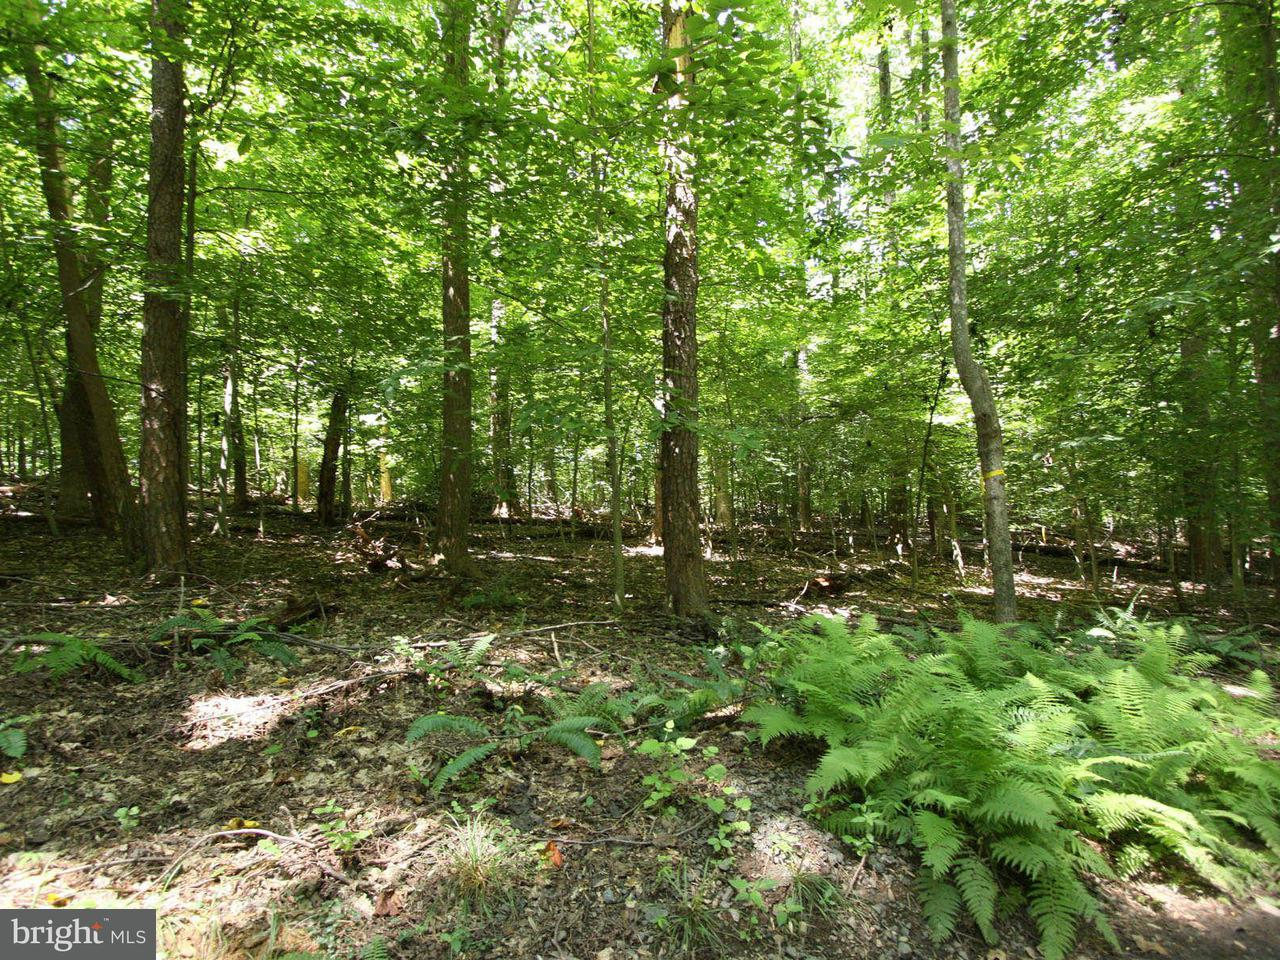 Land for Sale at 11215 WEST MONTPELIER RD W 11215 WEST MONTPELIER RD W Great Falls, Virginia 22066 United States